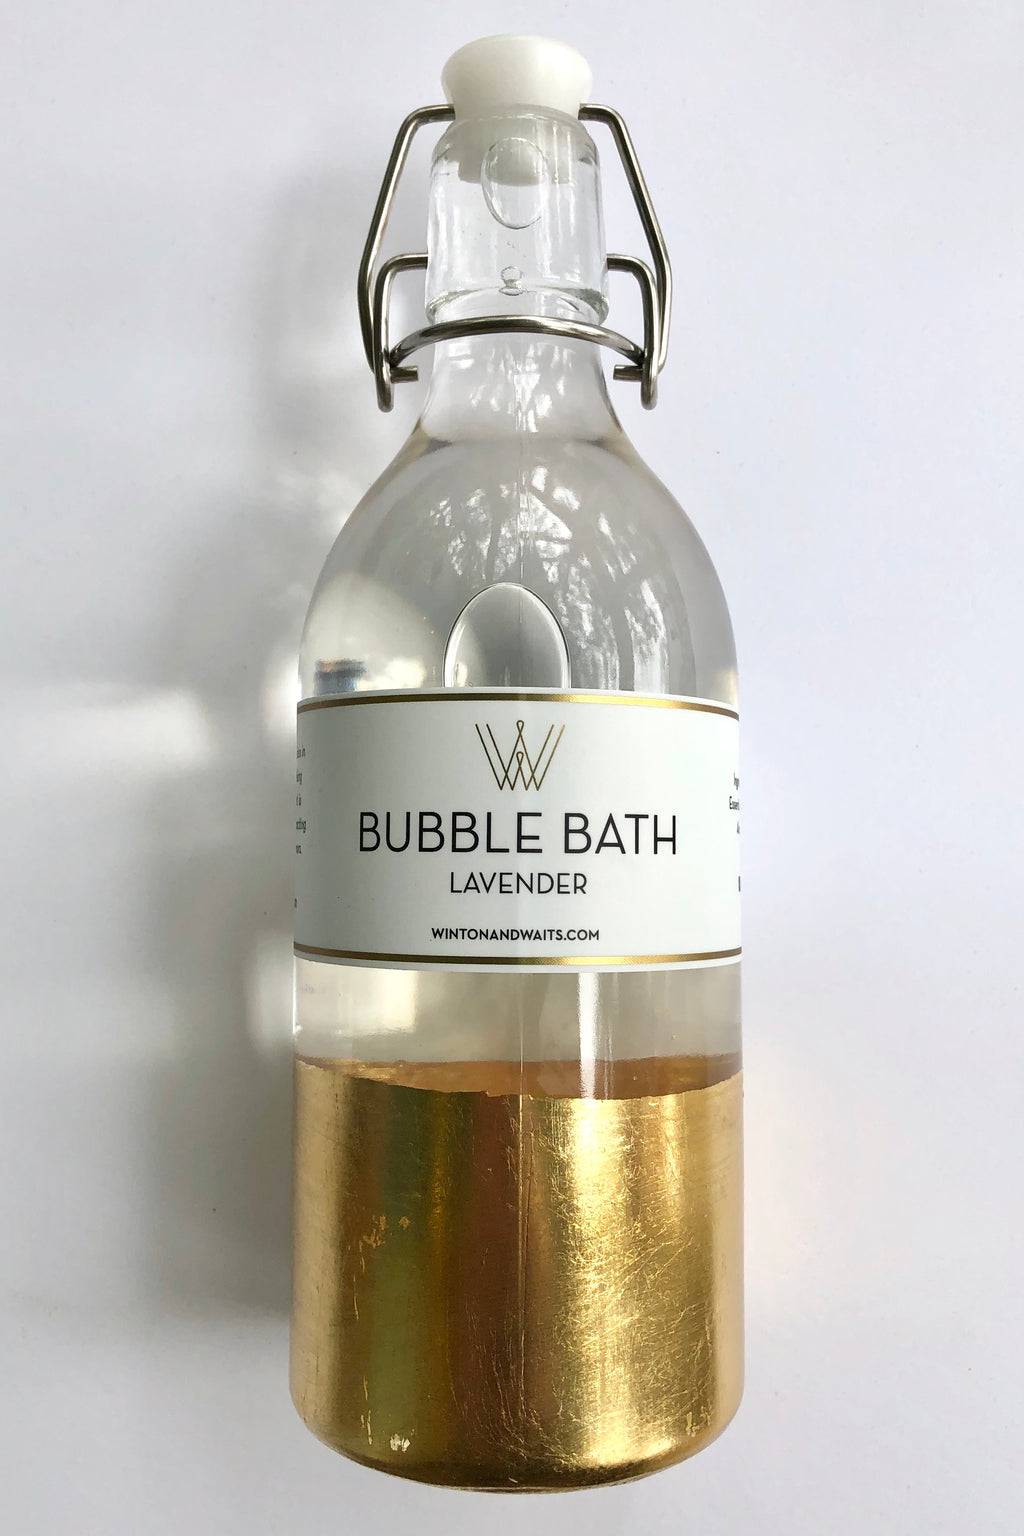 Lavender Bubble bath 17oz